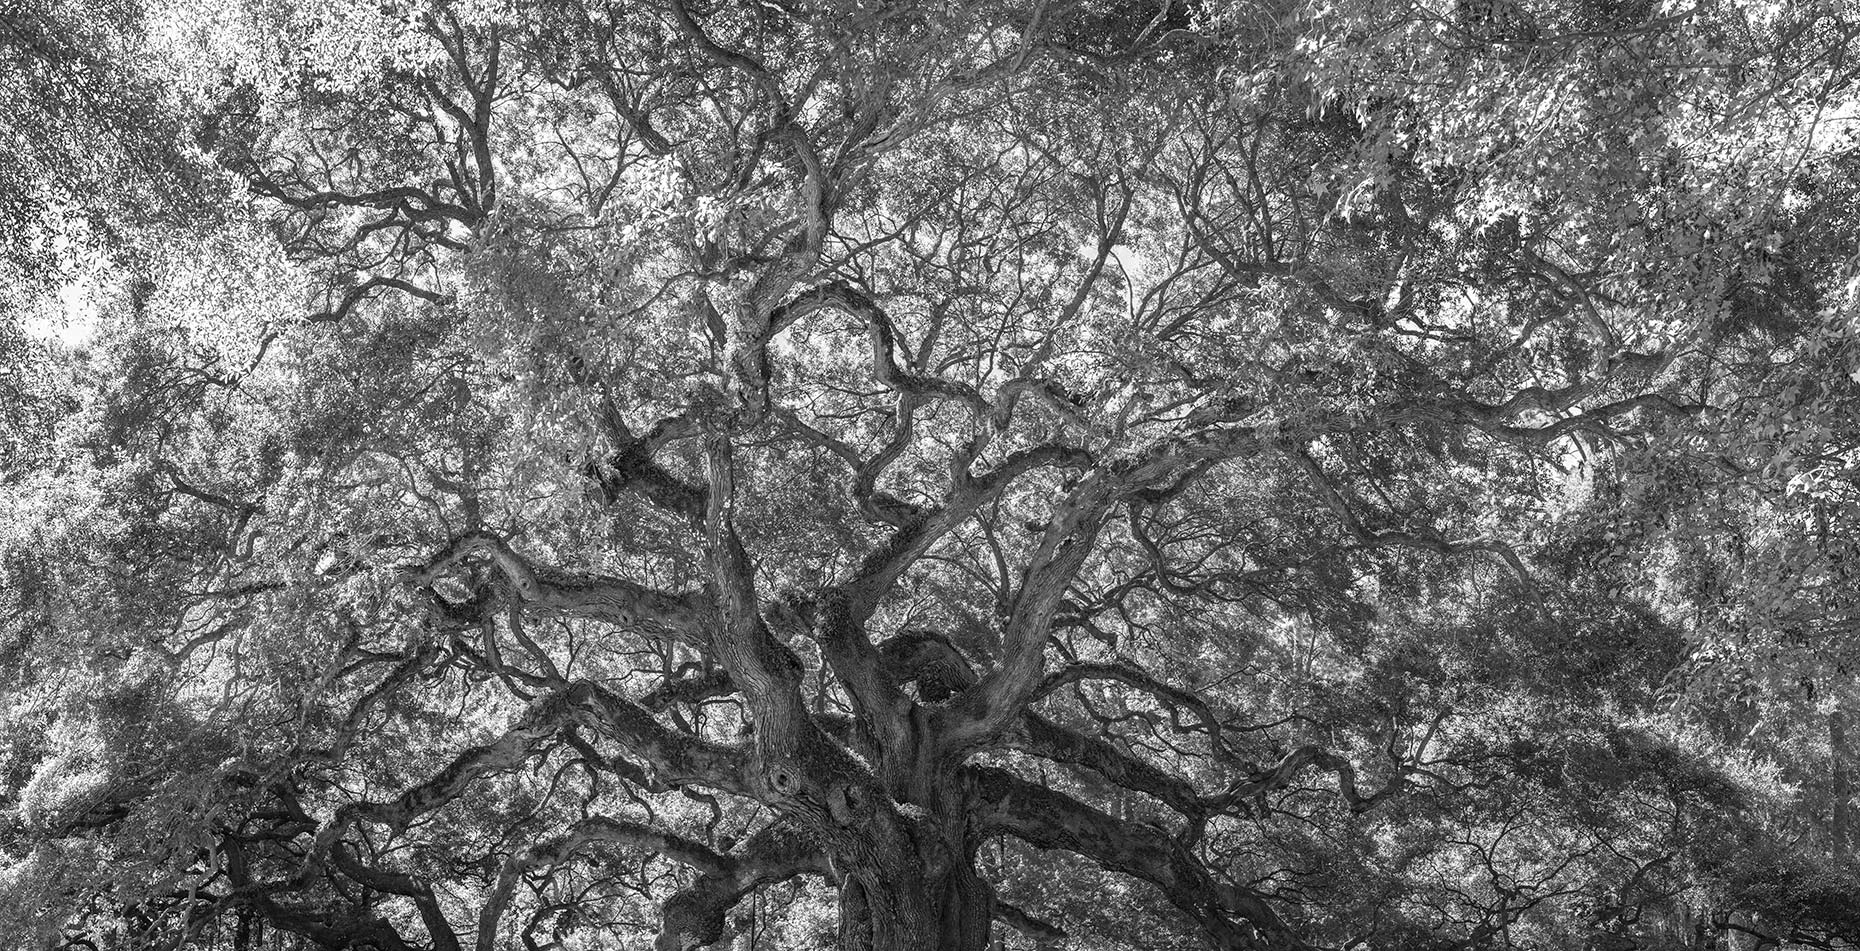 southlight_web_014_angel_oak_7363_7366